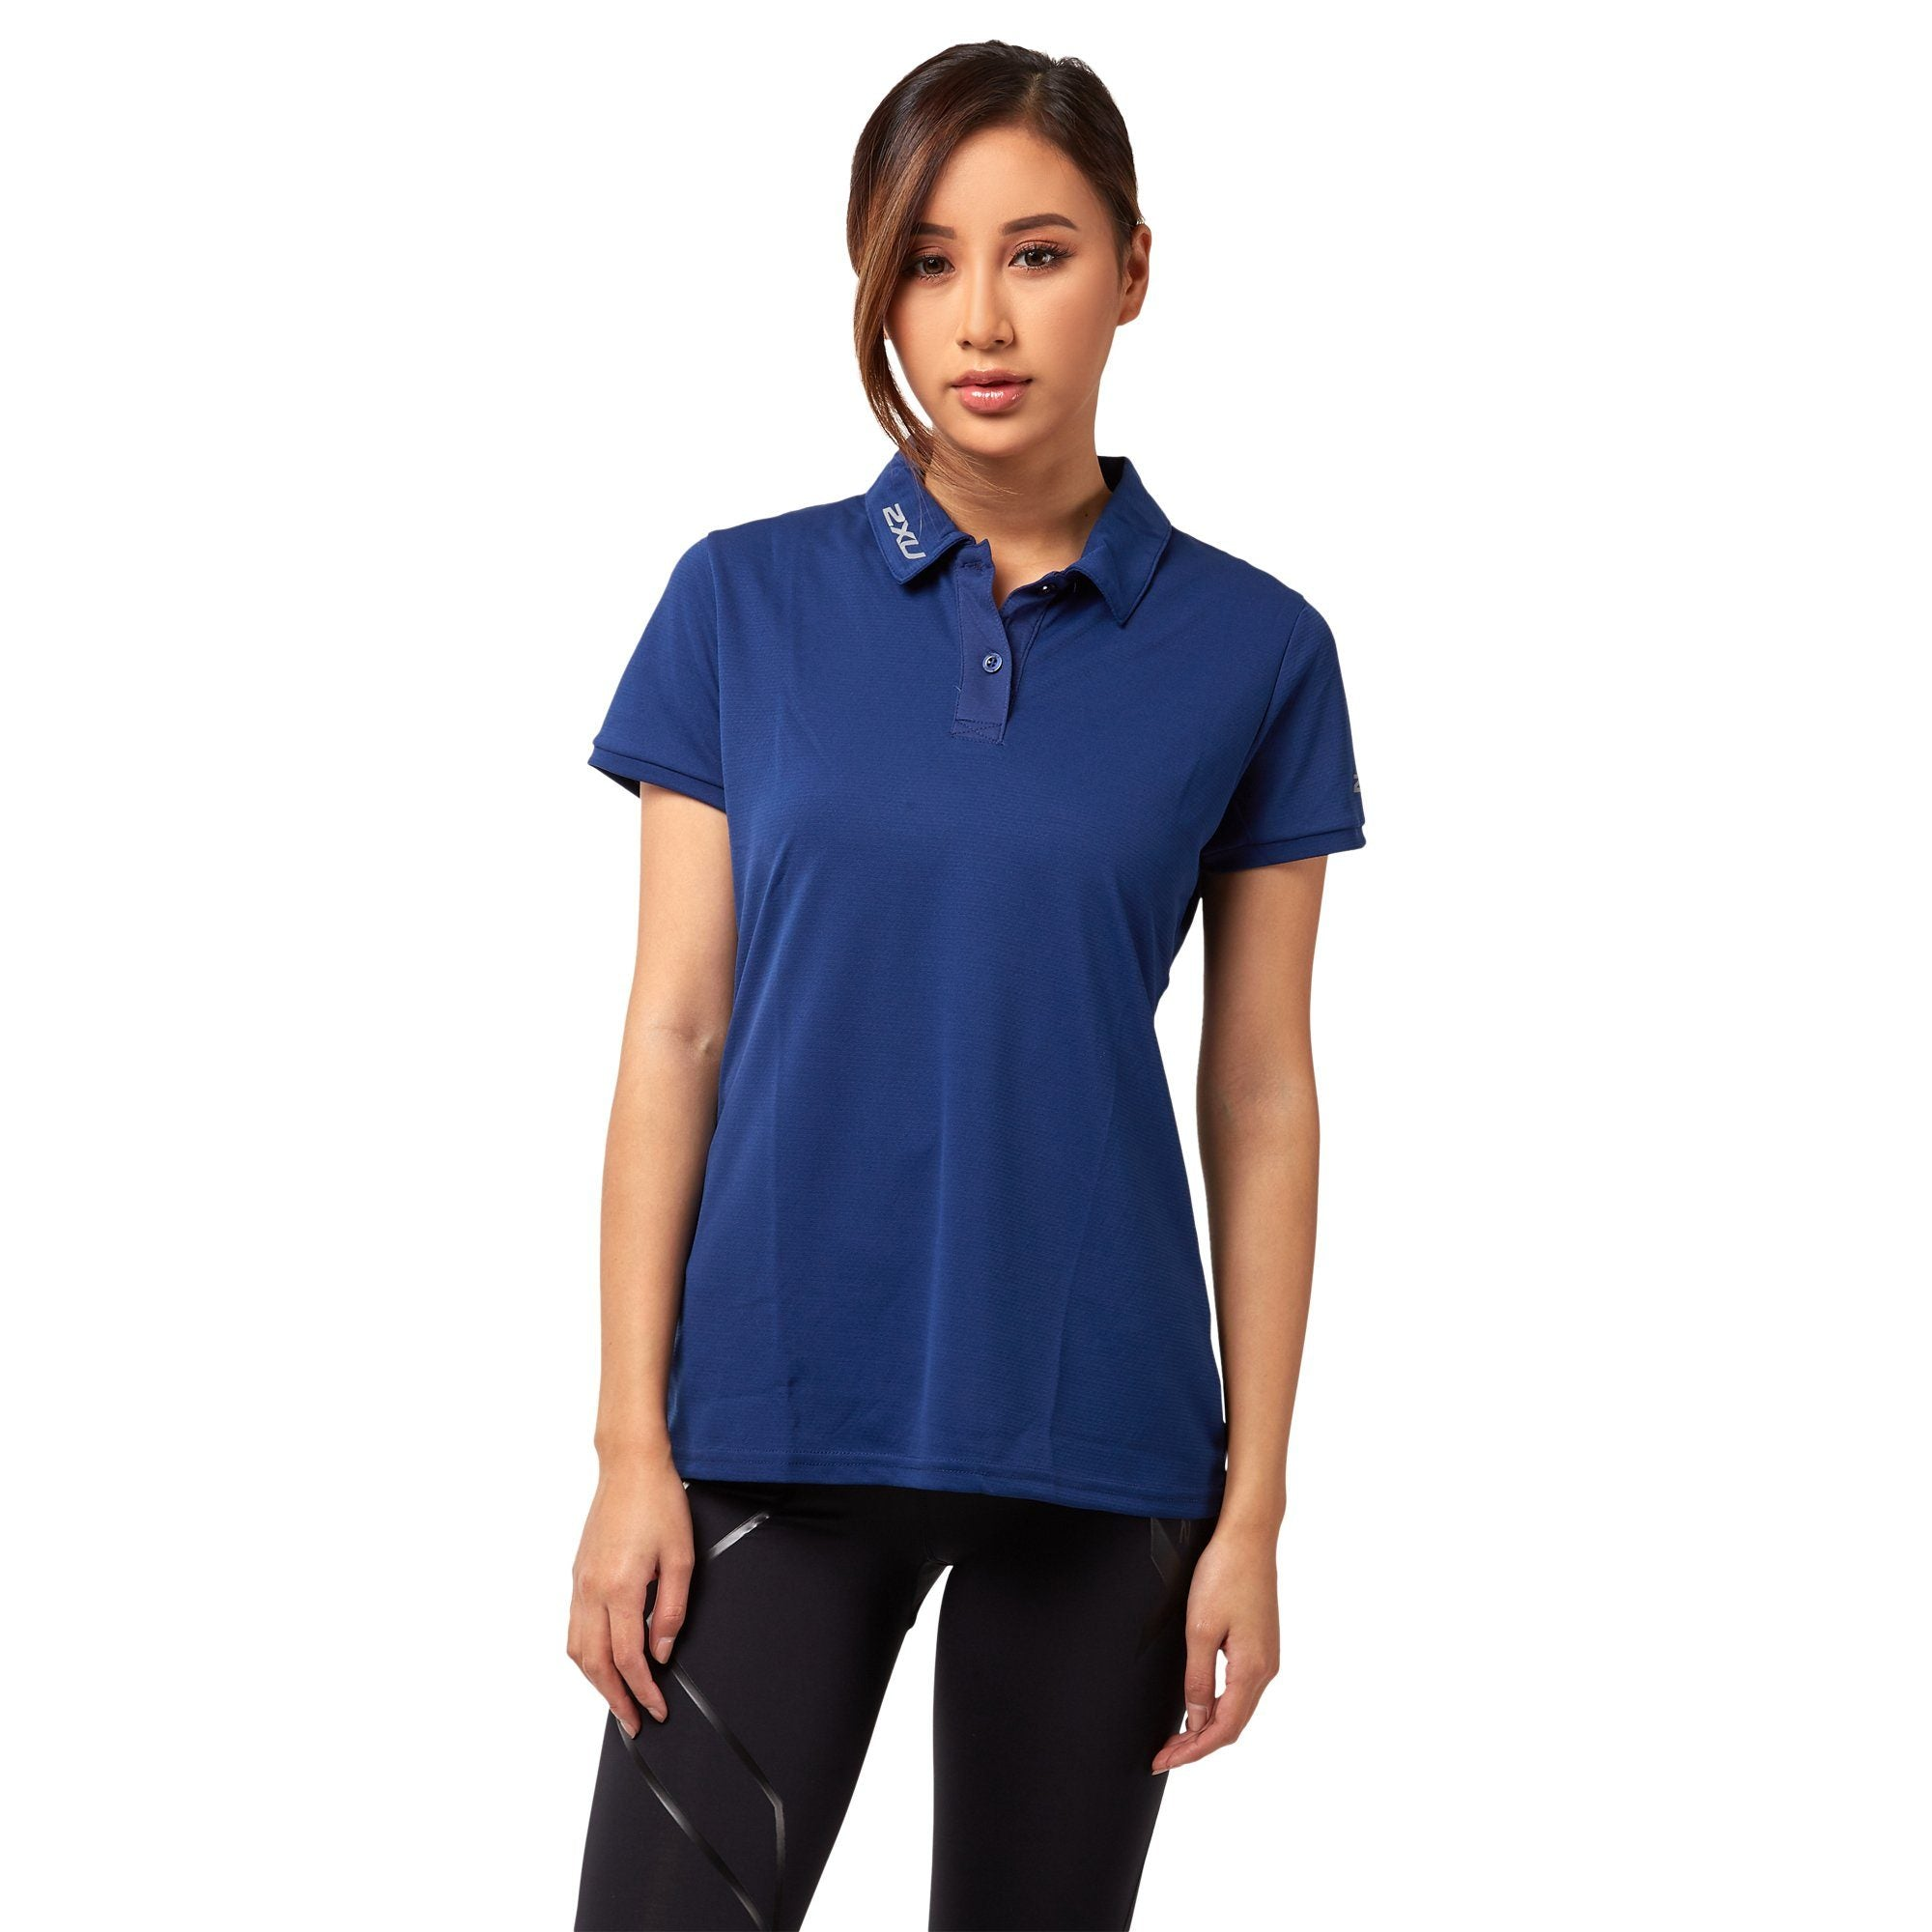 2XU Women's ACTIVE Polo - Navy Apparel 2XU  (2019203186747)